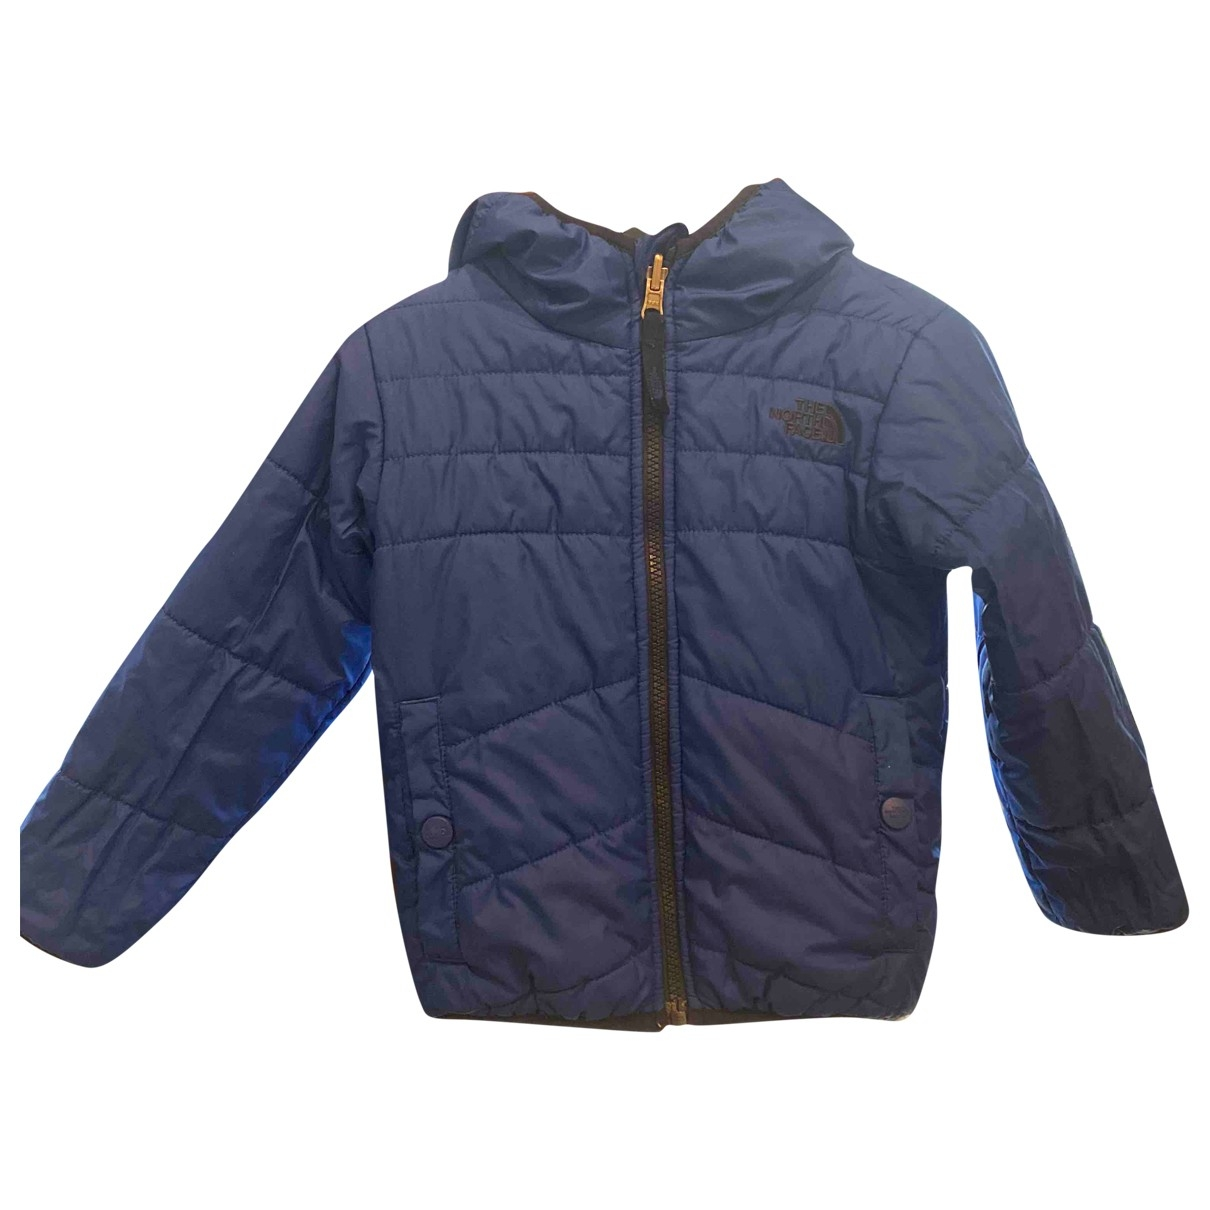 The North Face \N Blue jacket & coat for Kids 2 years - up to 86cm FR